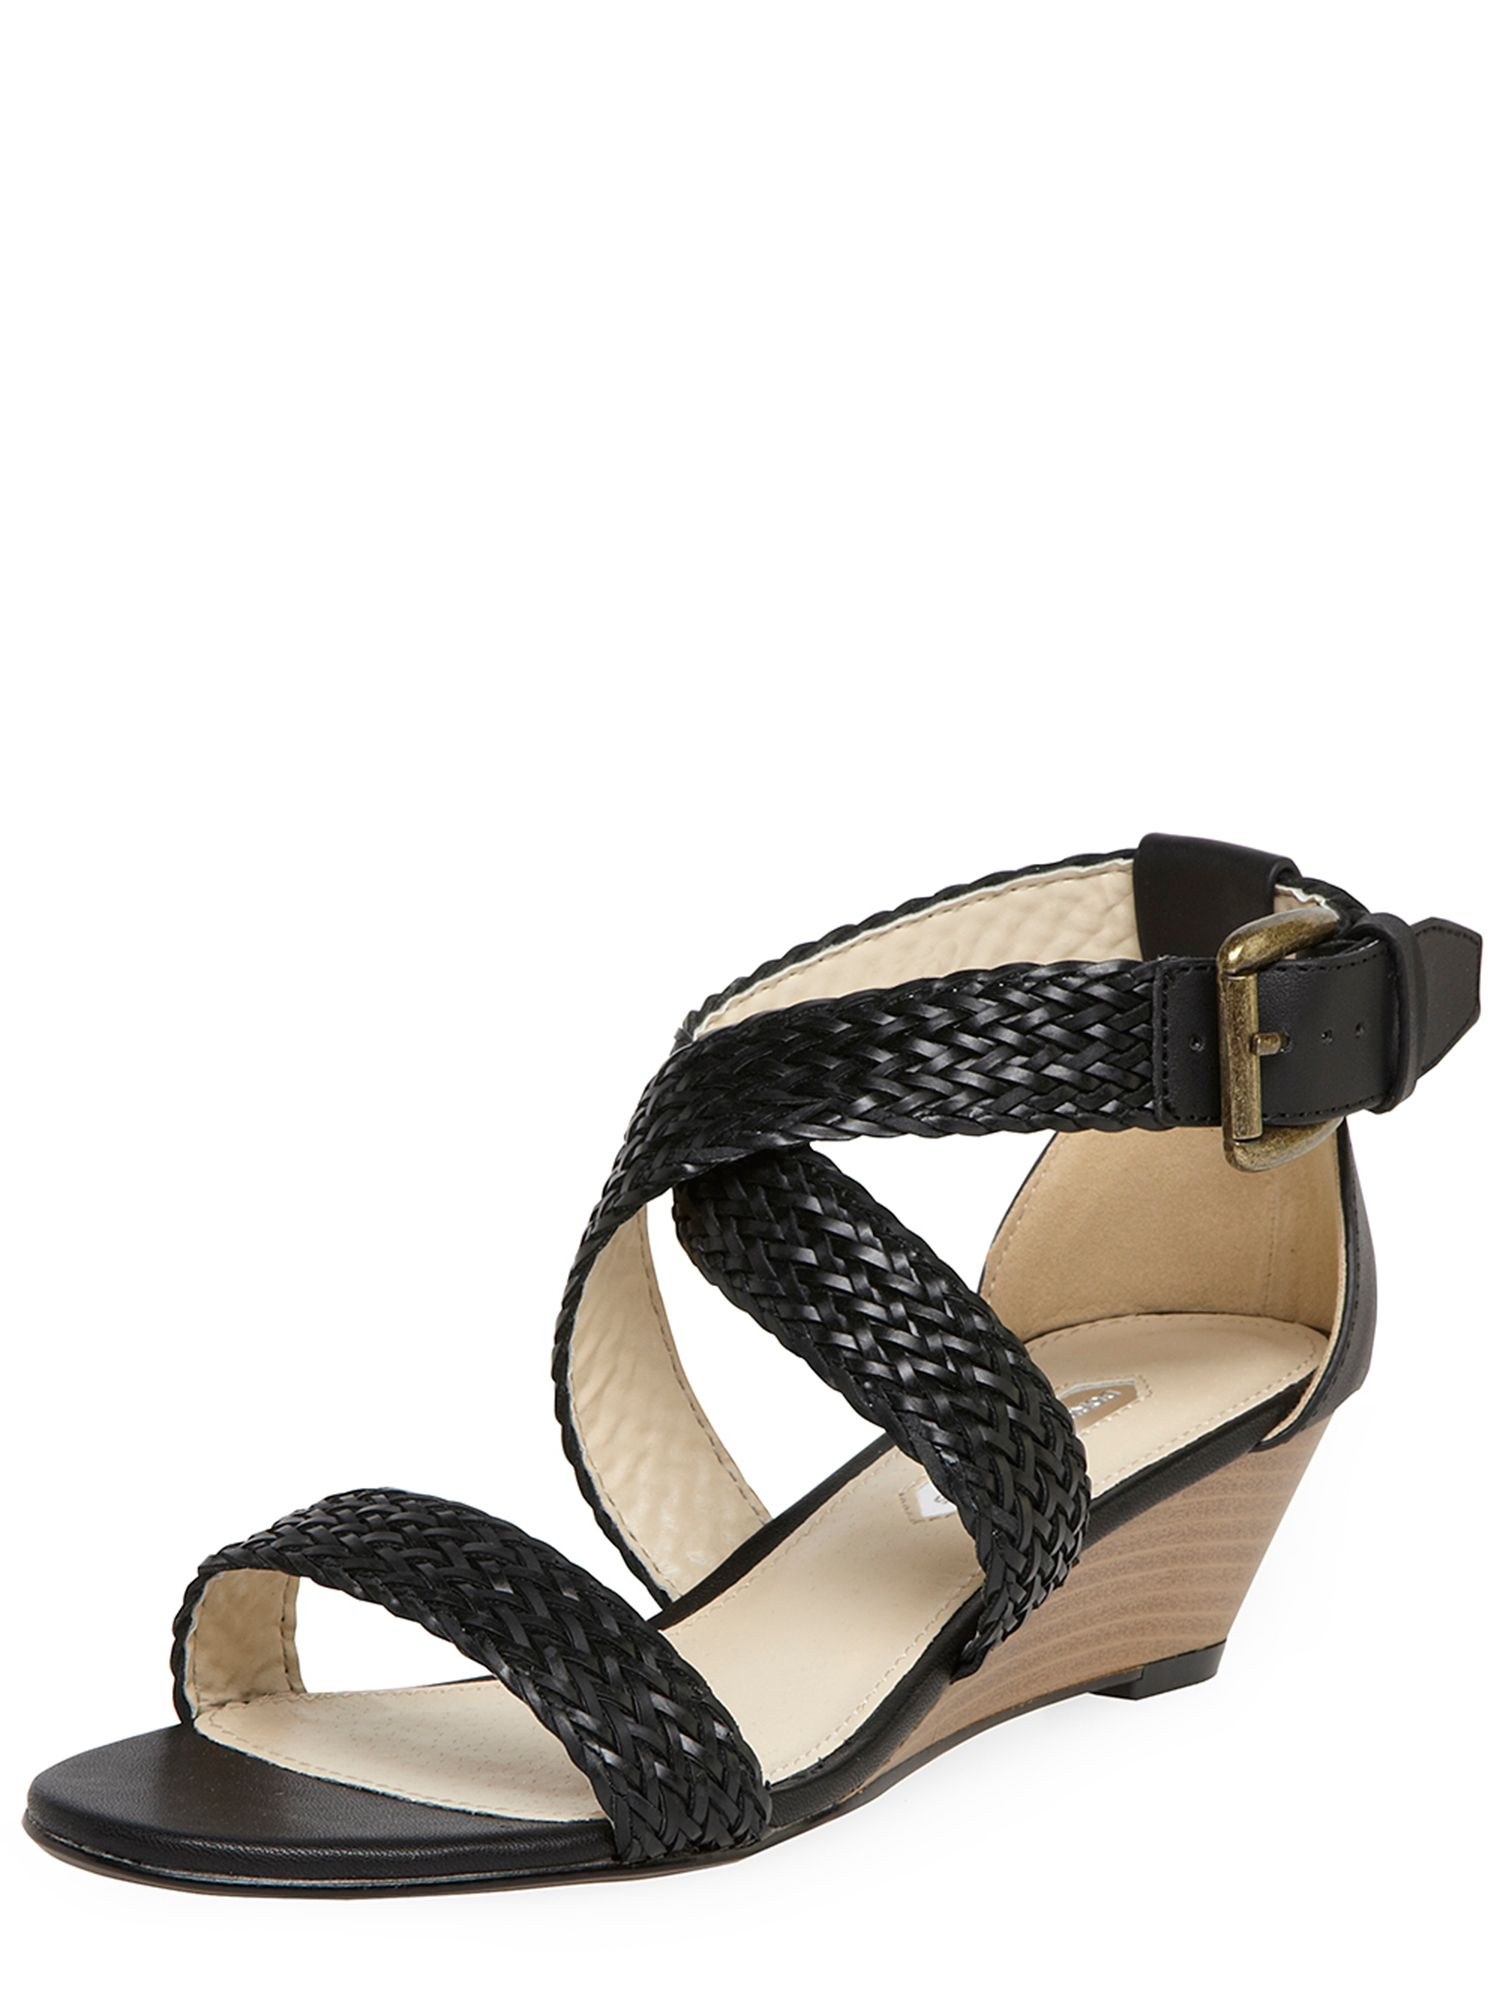 Woven Low Heel Wedges